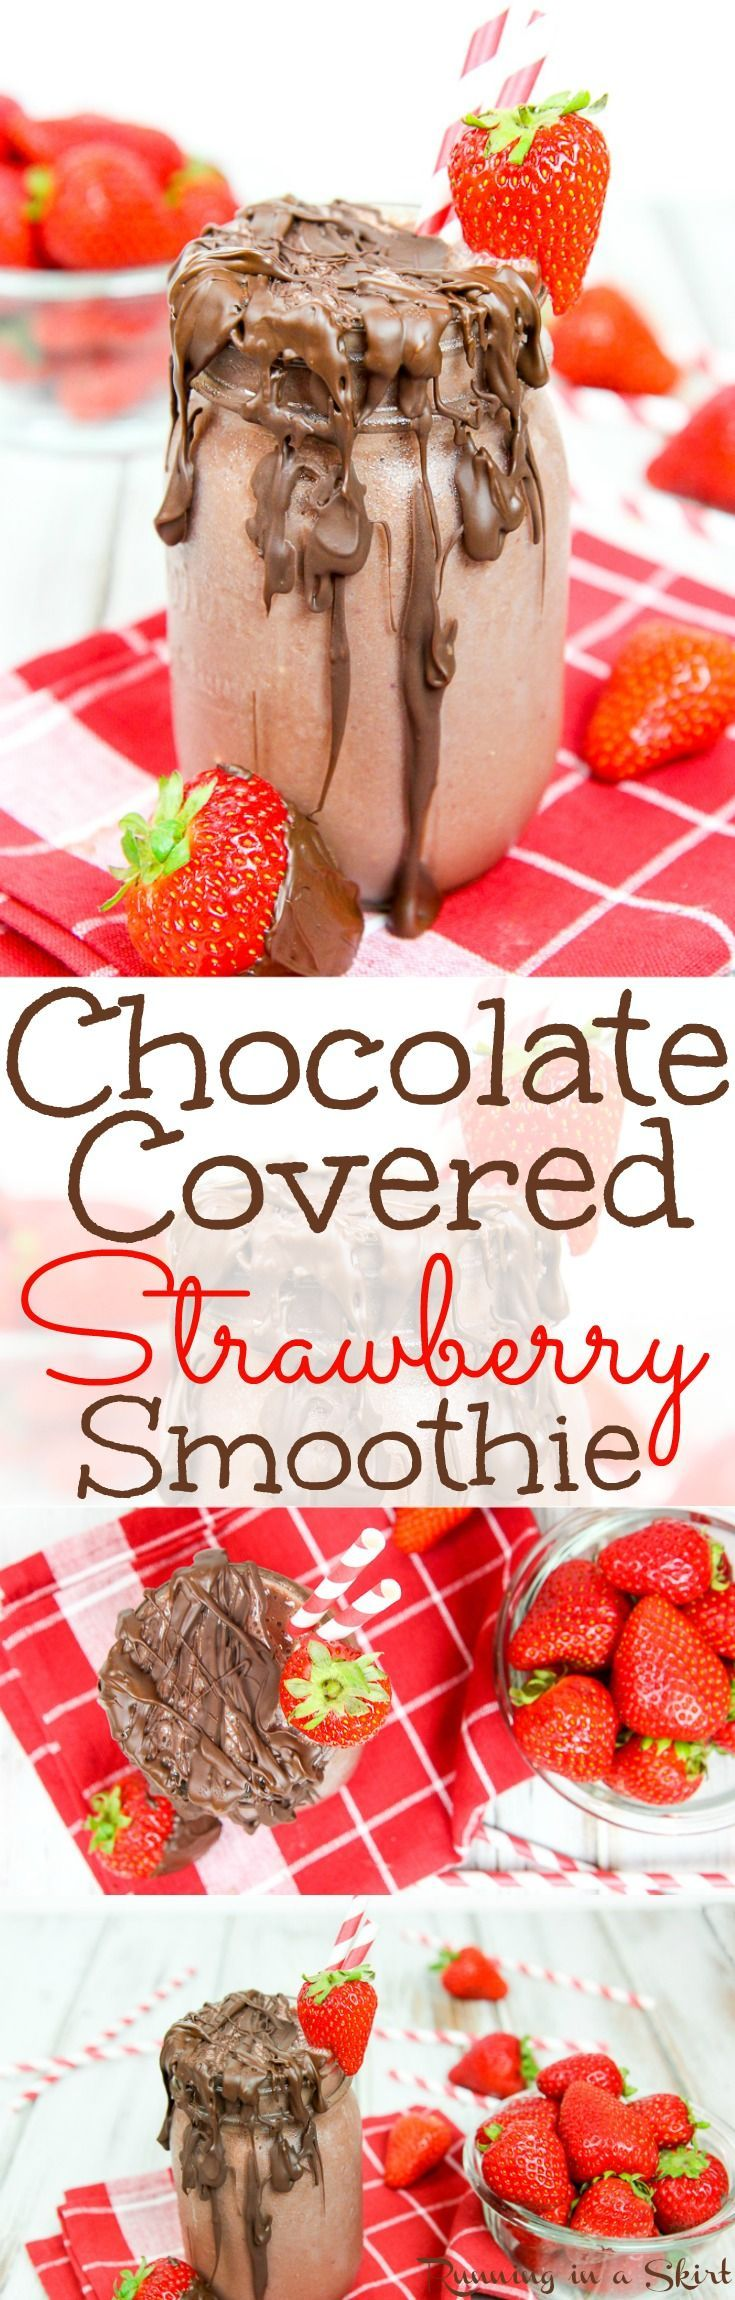 5 Ingredient Healthy Chocolate Covered Strawberry smoothie recipe.  Vegan, gluten free and vegetarian smoothie for any meal including breakfast or even dessert!  Great for a healthy Valentine's Day treats. / Running in a Skirt